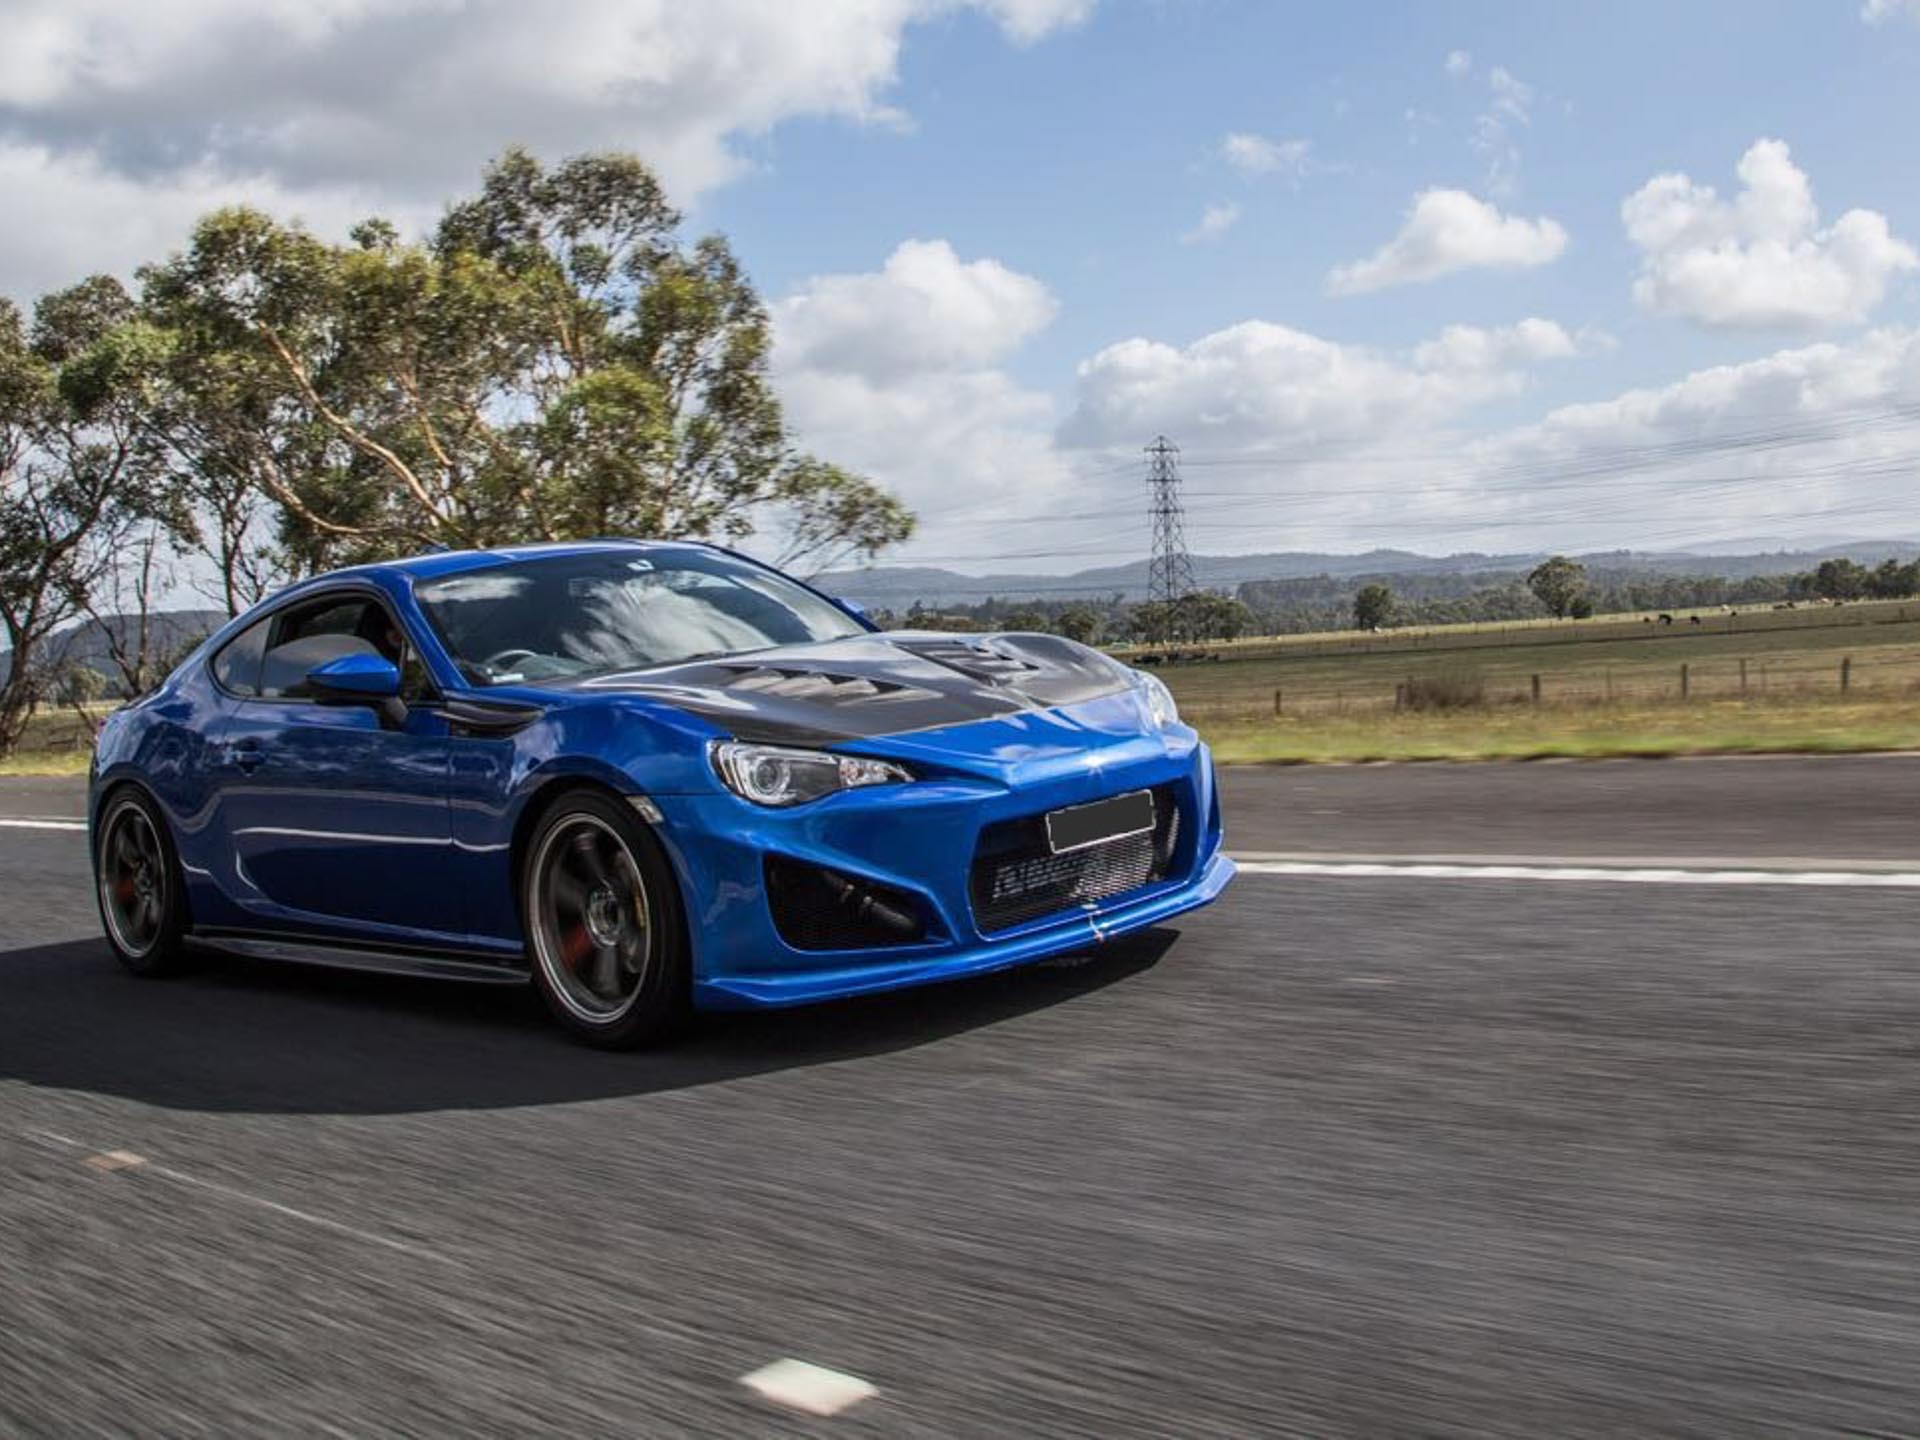 BRZ / GT86 1 BRZ / GT86 With the 86 platform, we don't put together any performance packages as we've found everybody wants different things done at different times. You can rest assured that we have access to source you any brand of any part for your 86 or BRZ